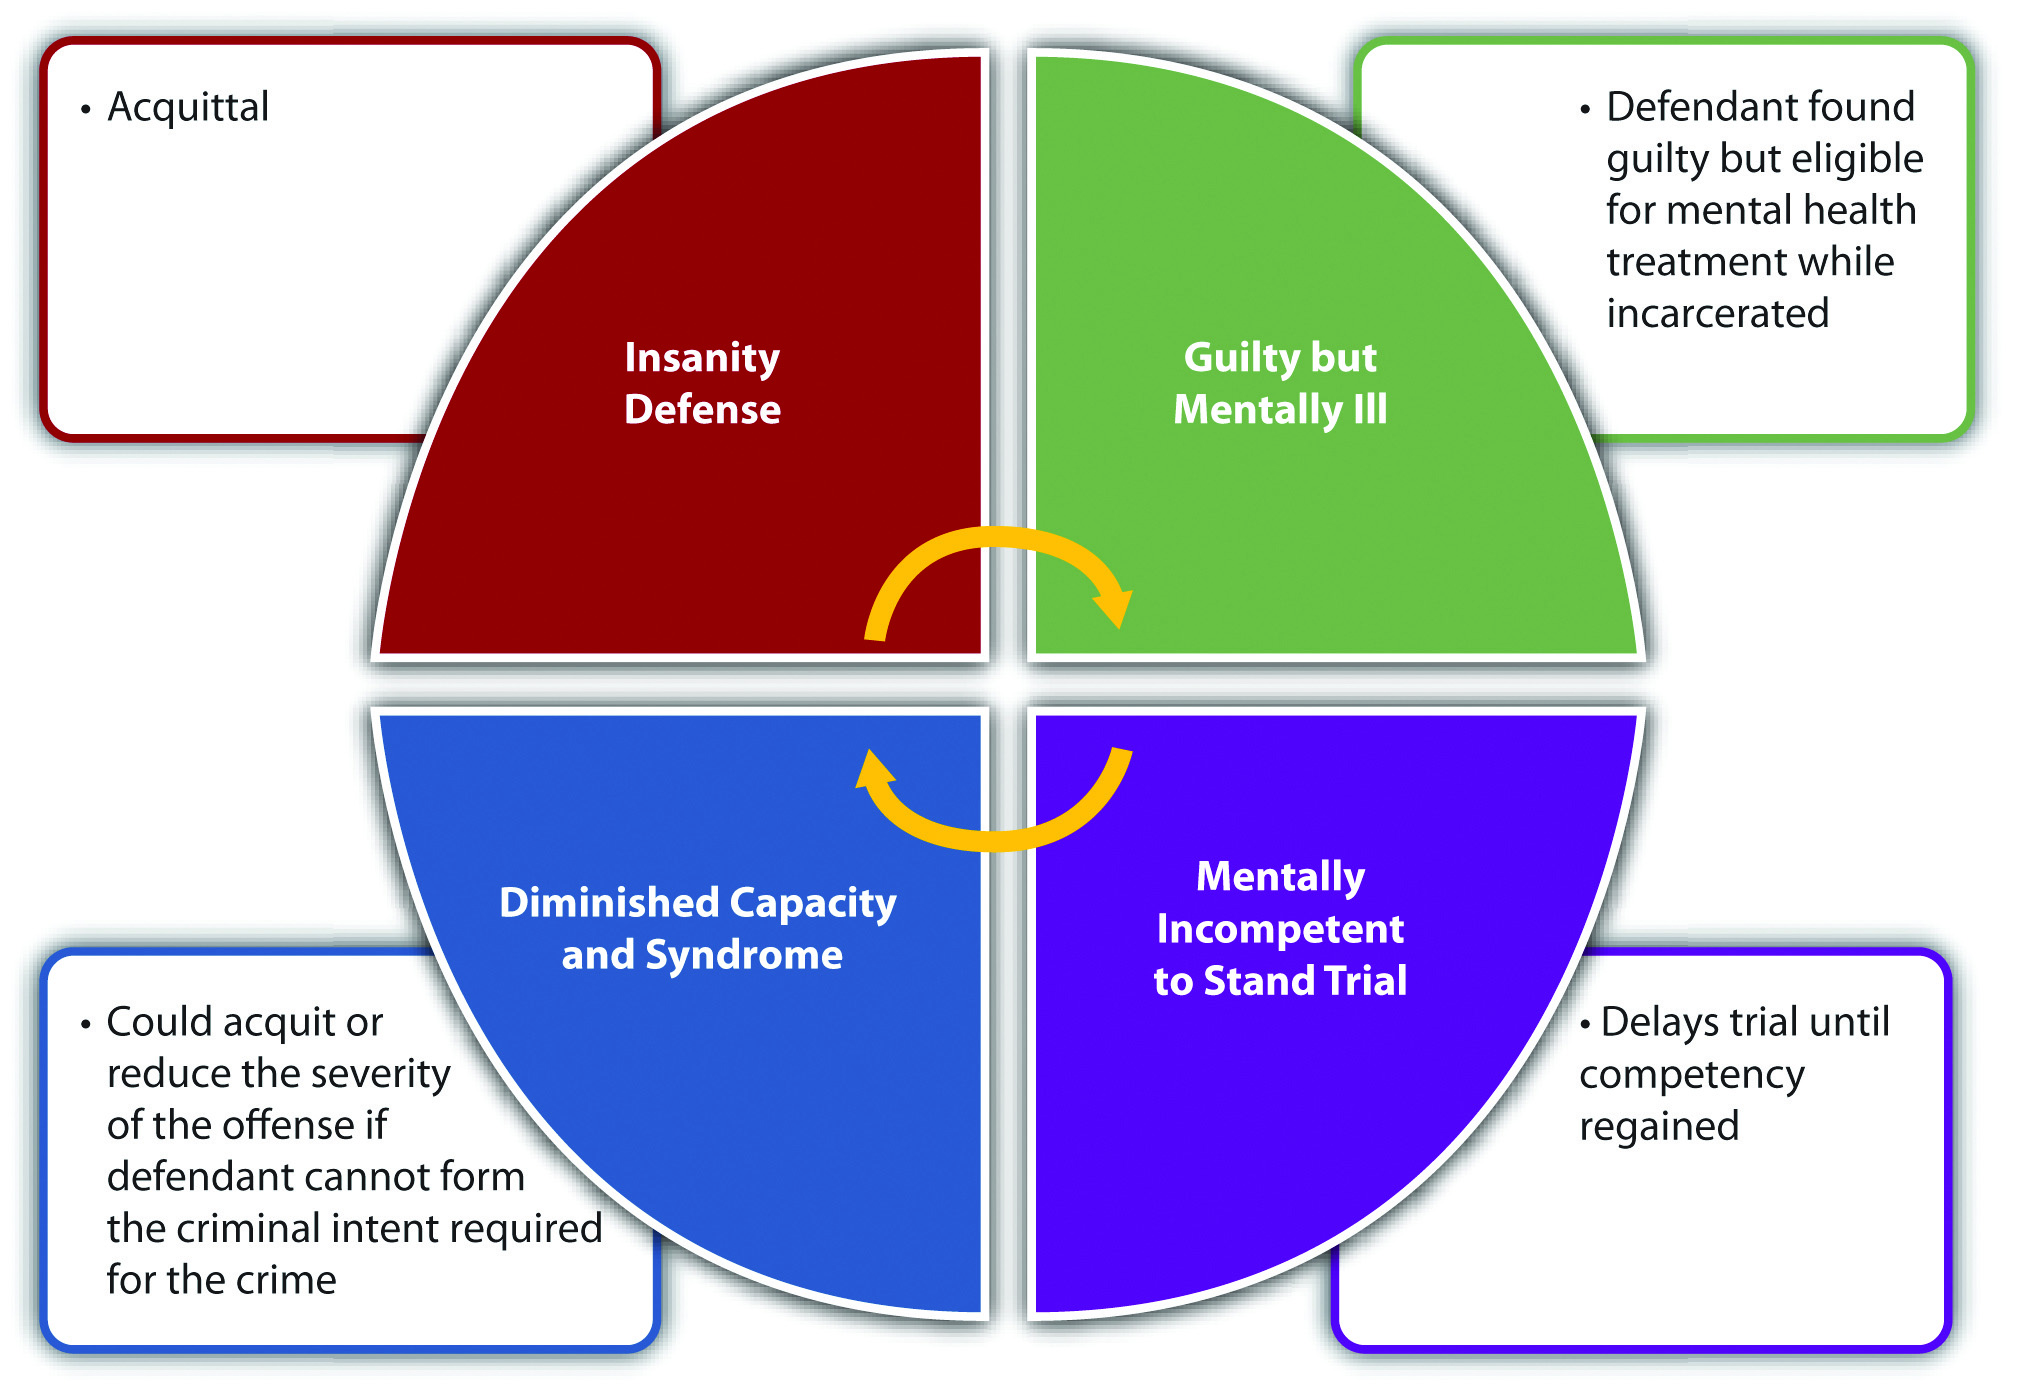 Effects (Circular Diagram) of Mental Competency Claims